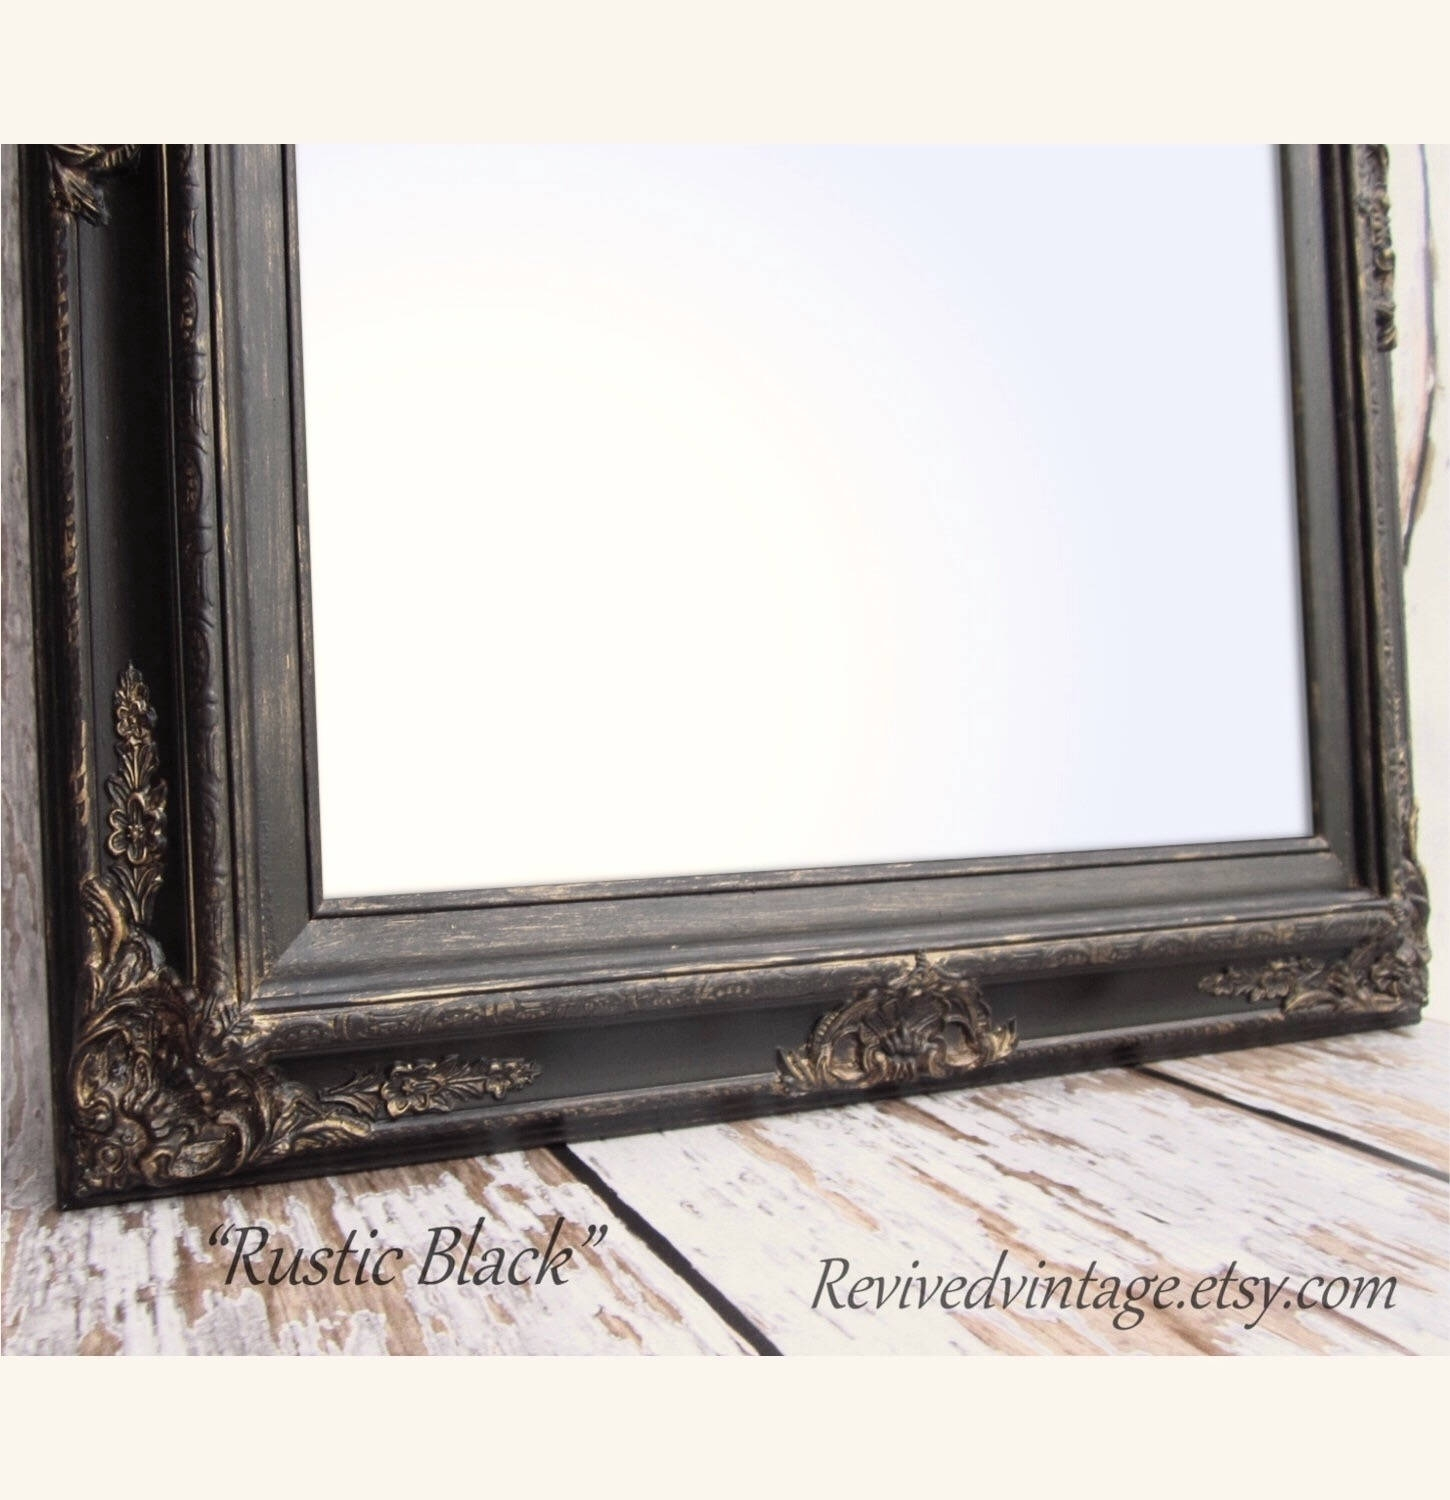 Large Ornate Mirror Etsy Regarding Large Ornate Mirrors For Sale (Image 10 of 15)